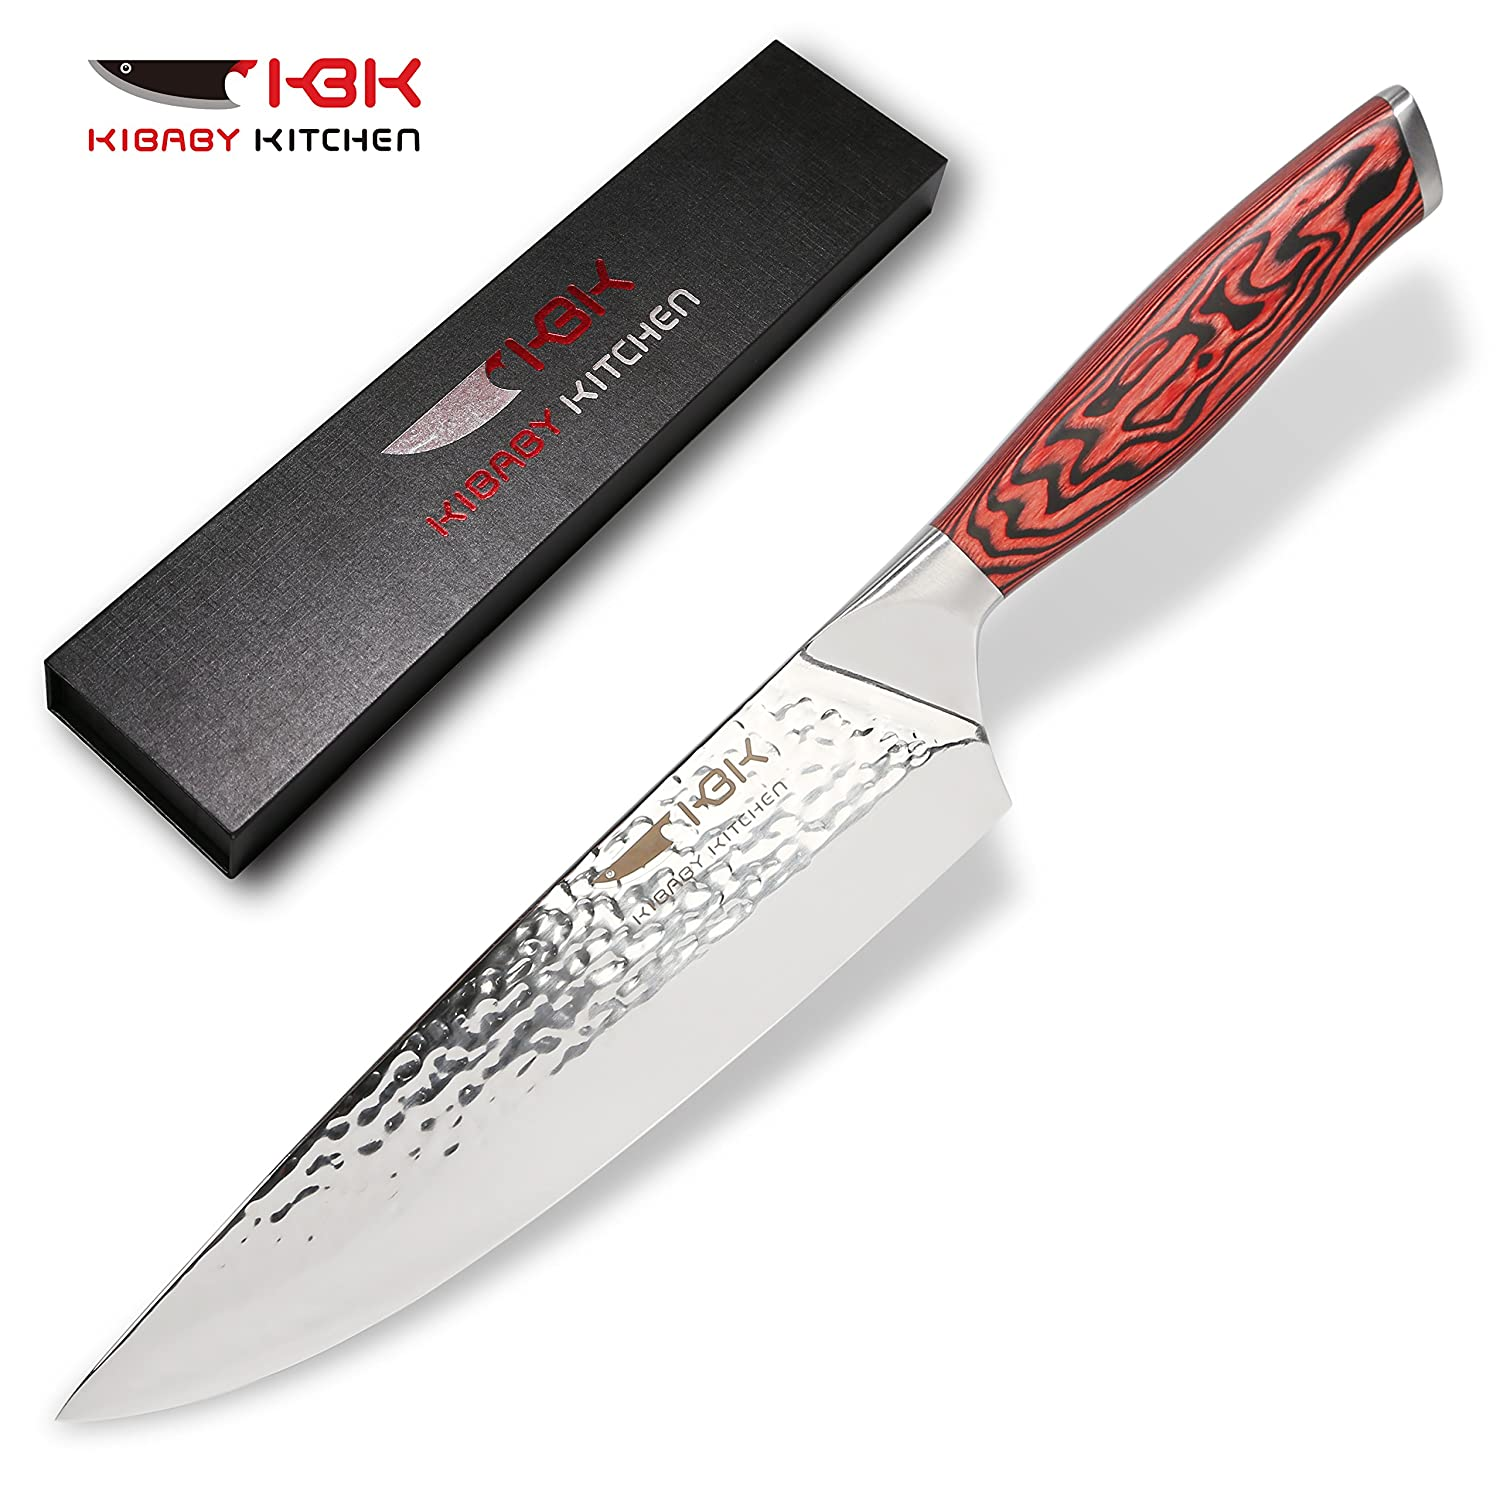 Kbk chef knife kitchen knives 8 inch professional chefs knives 440c stainless steel with 58 to 60 hrc super sharp best for home kitchen cutting chopping